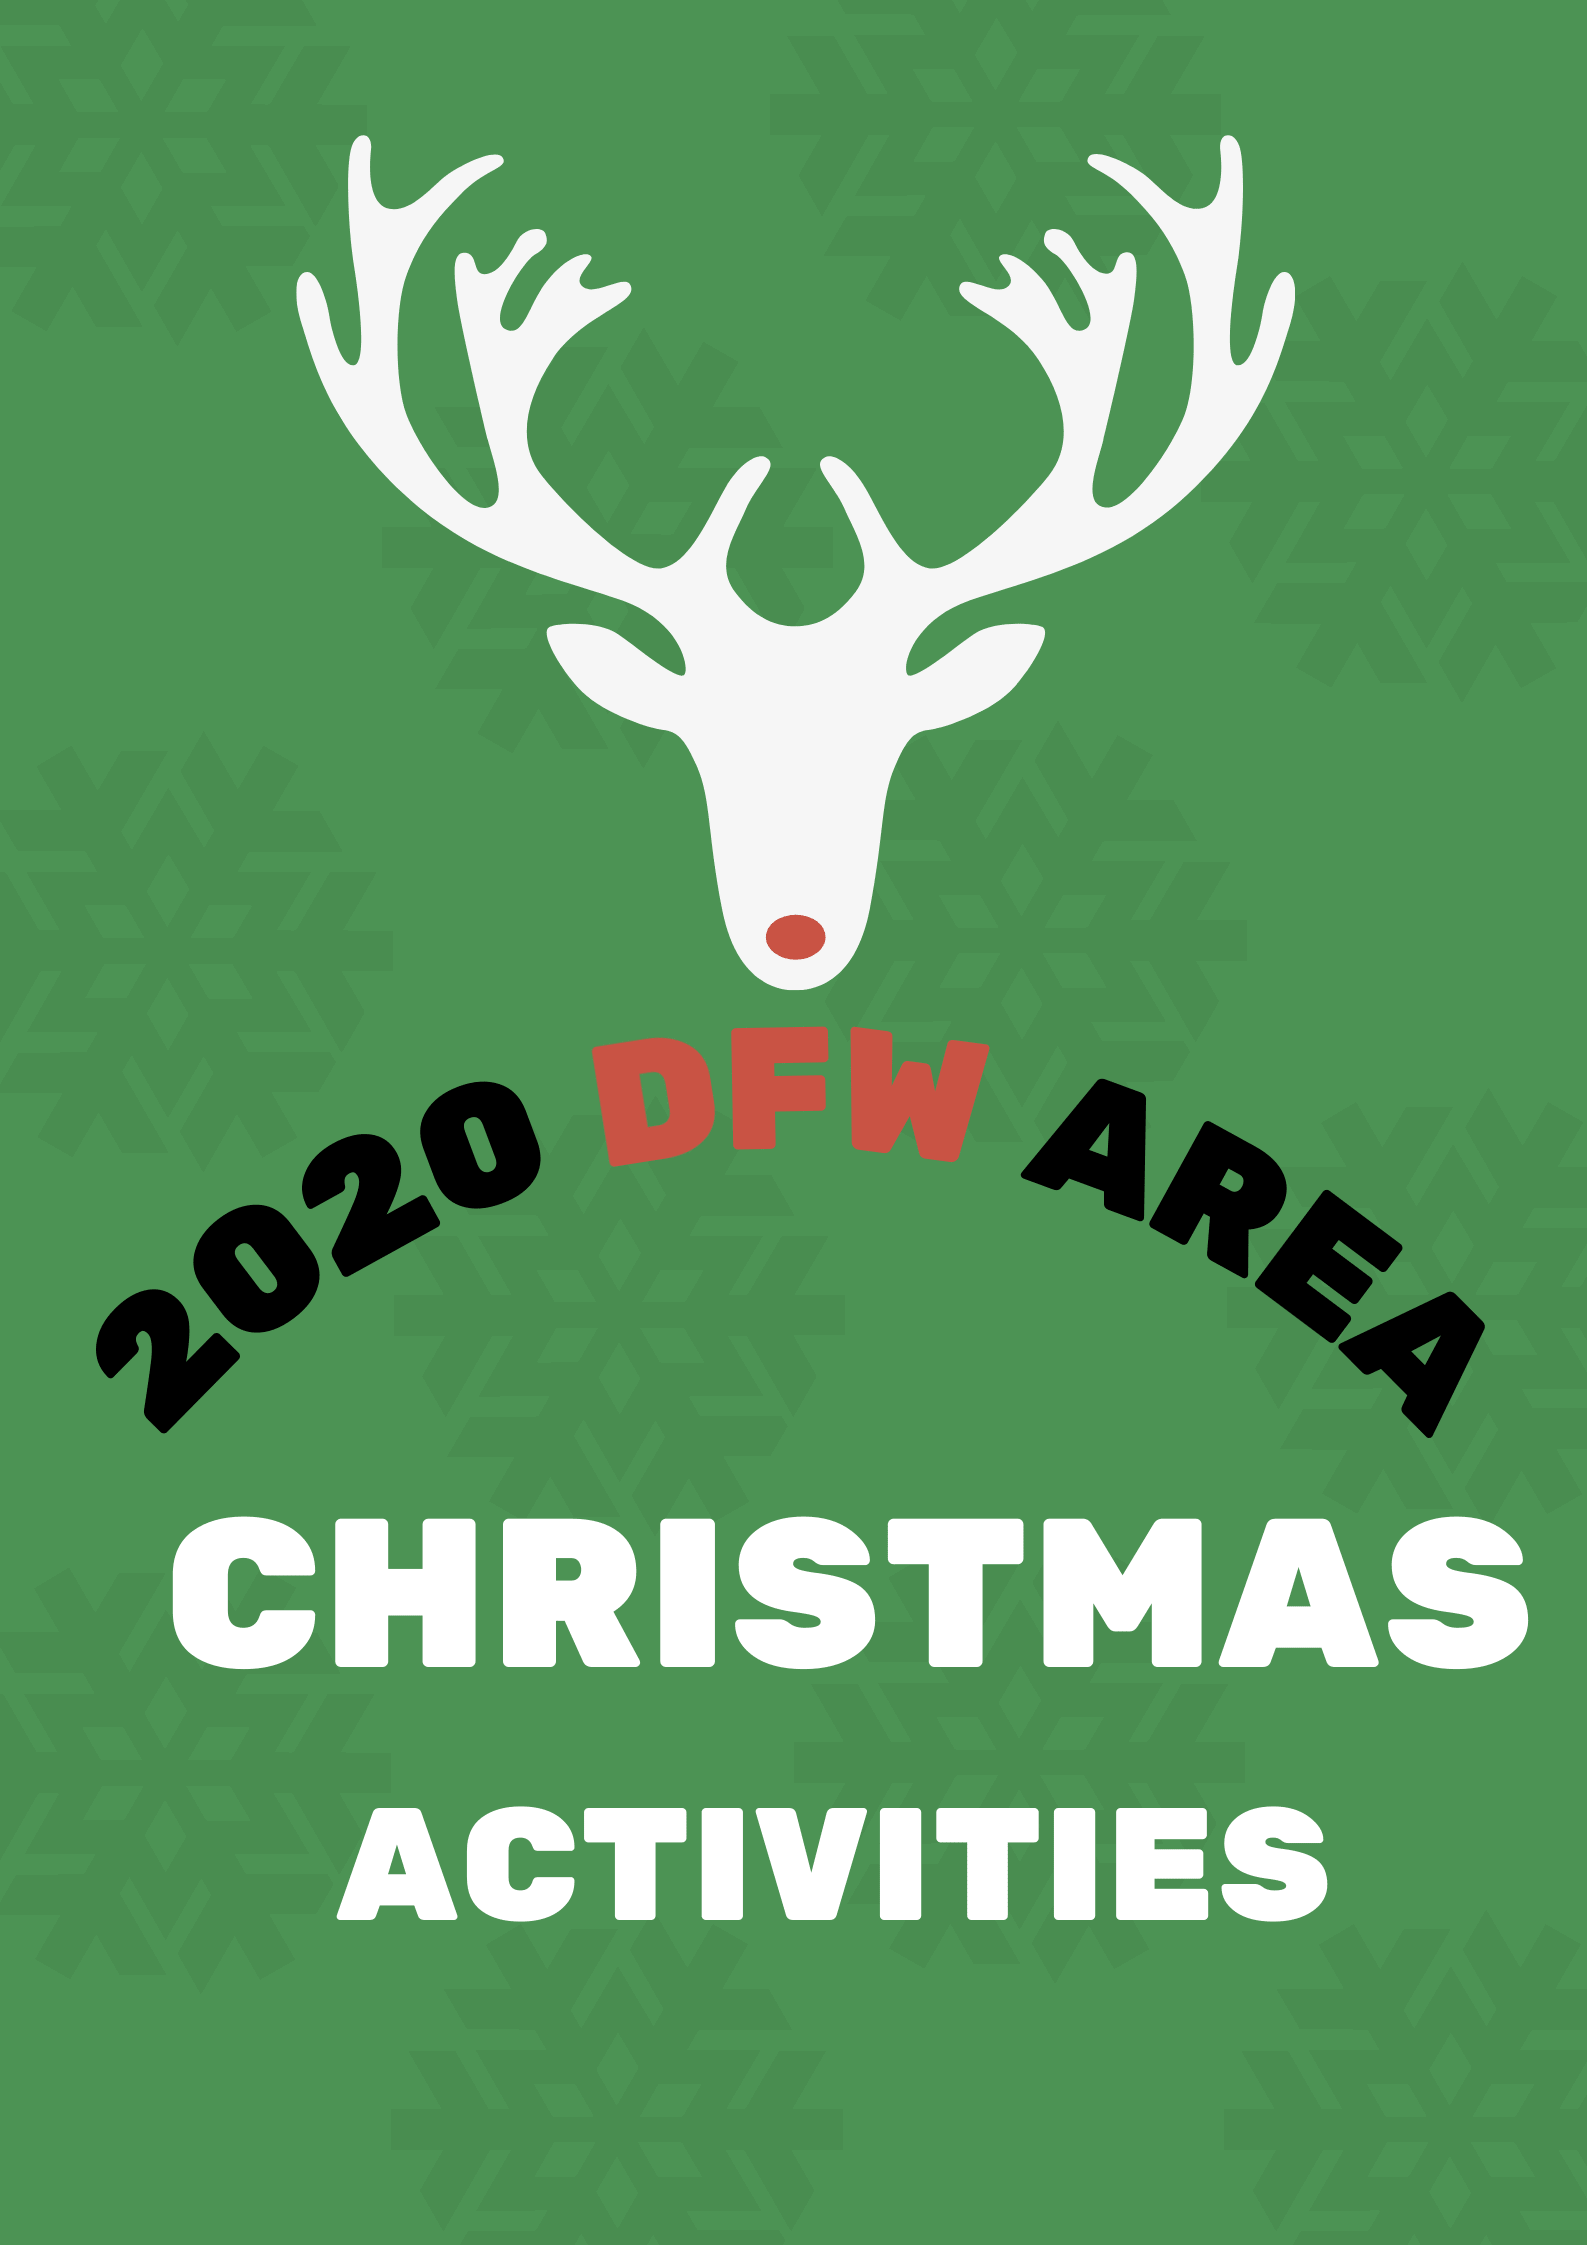 2020 Christmas Party flyer